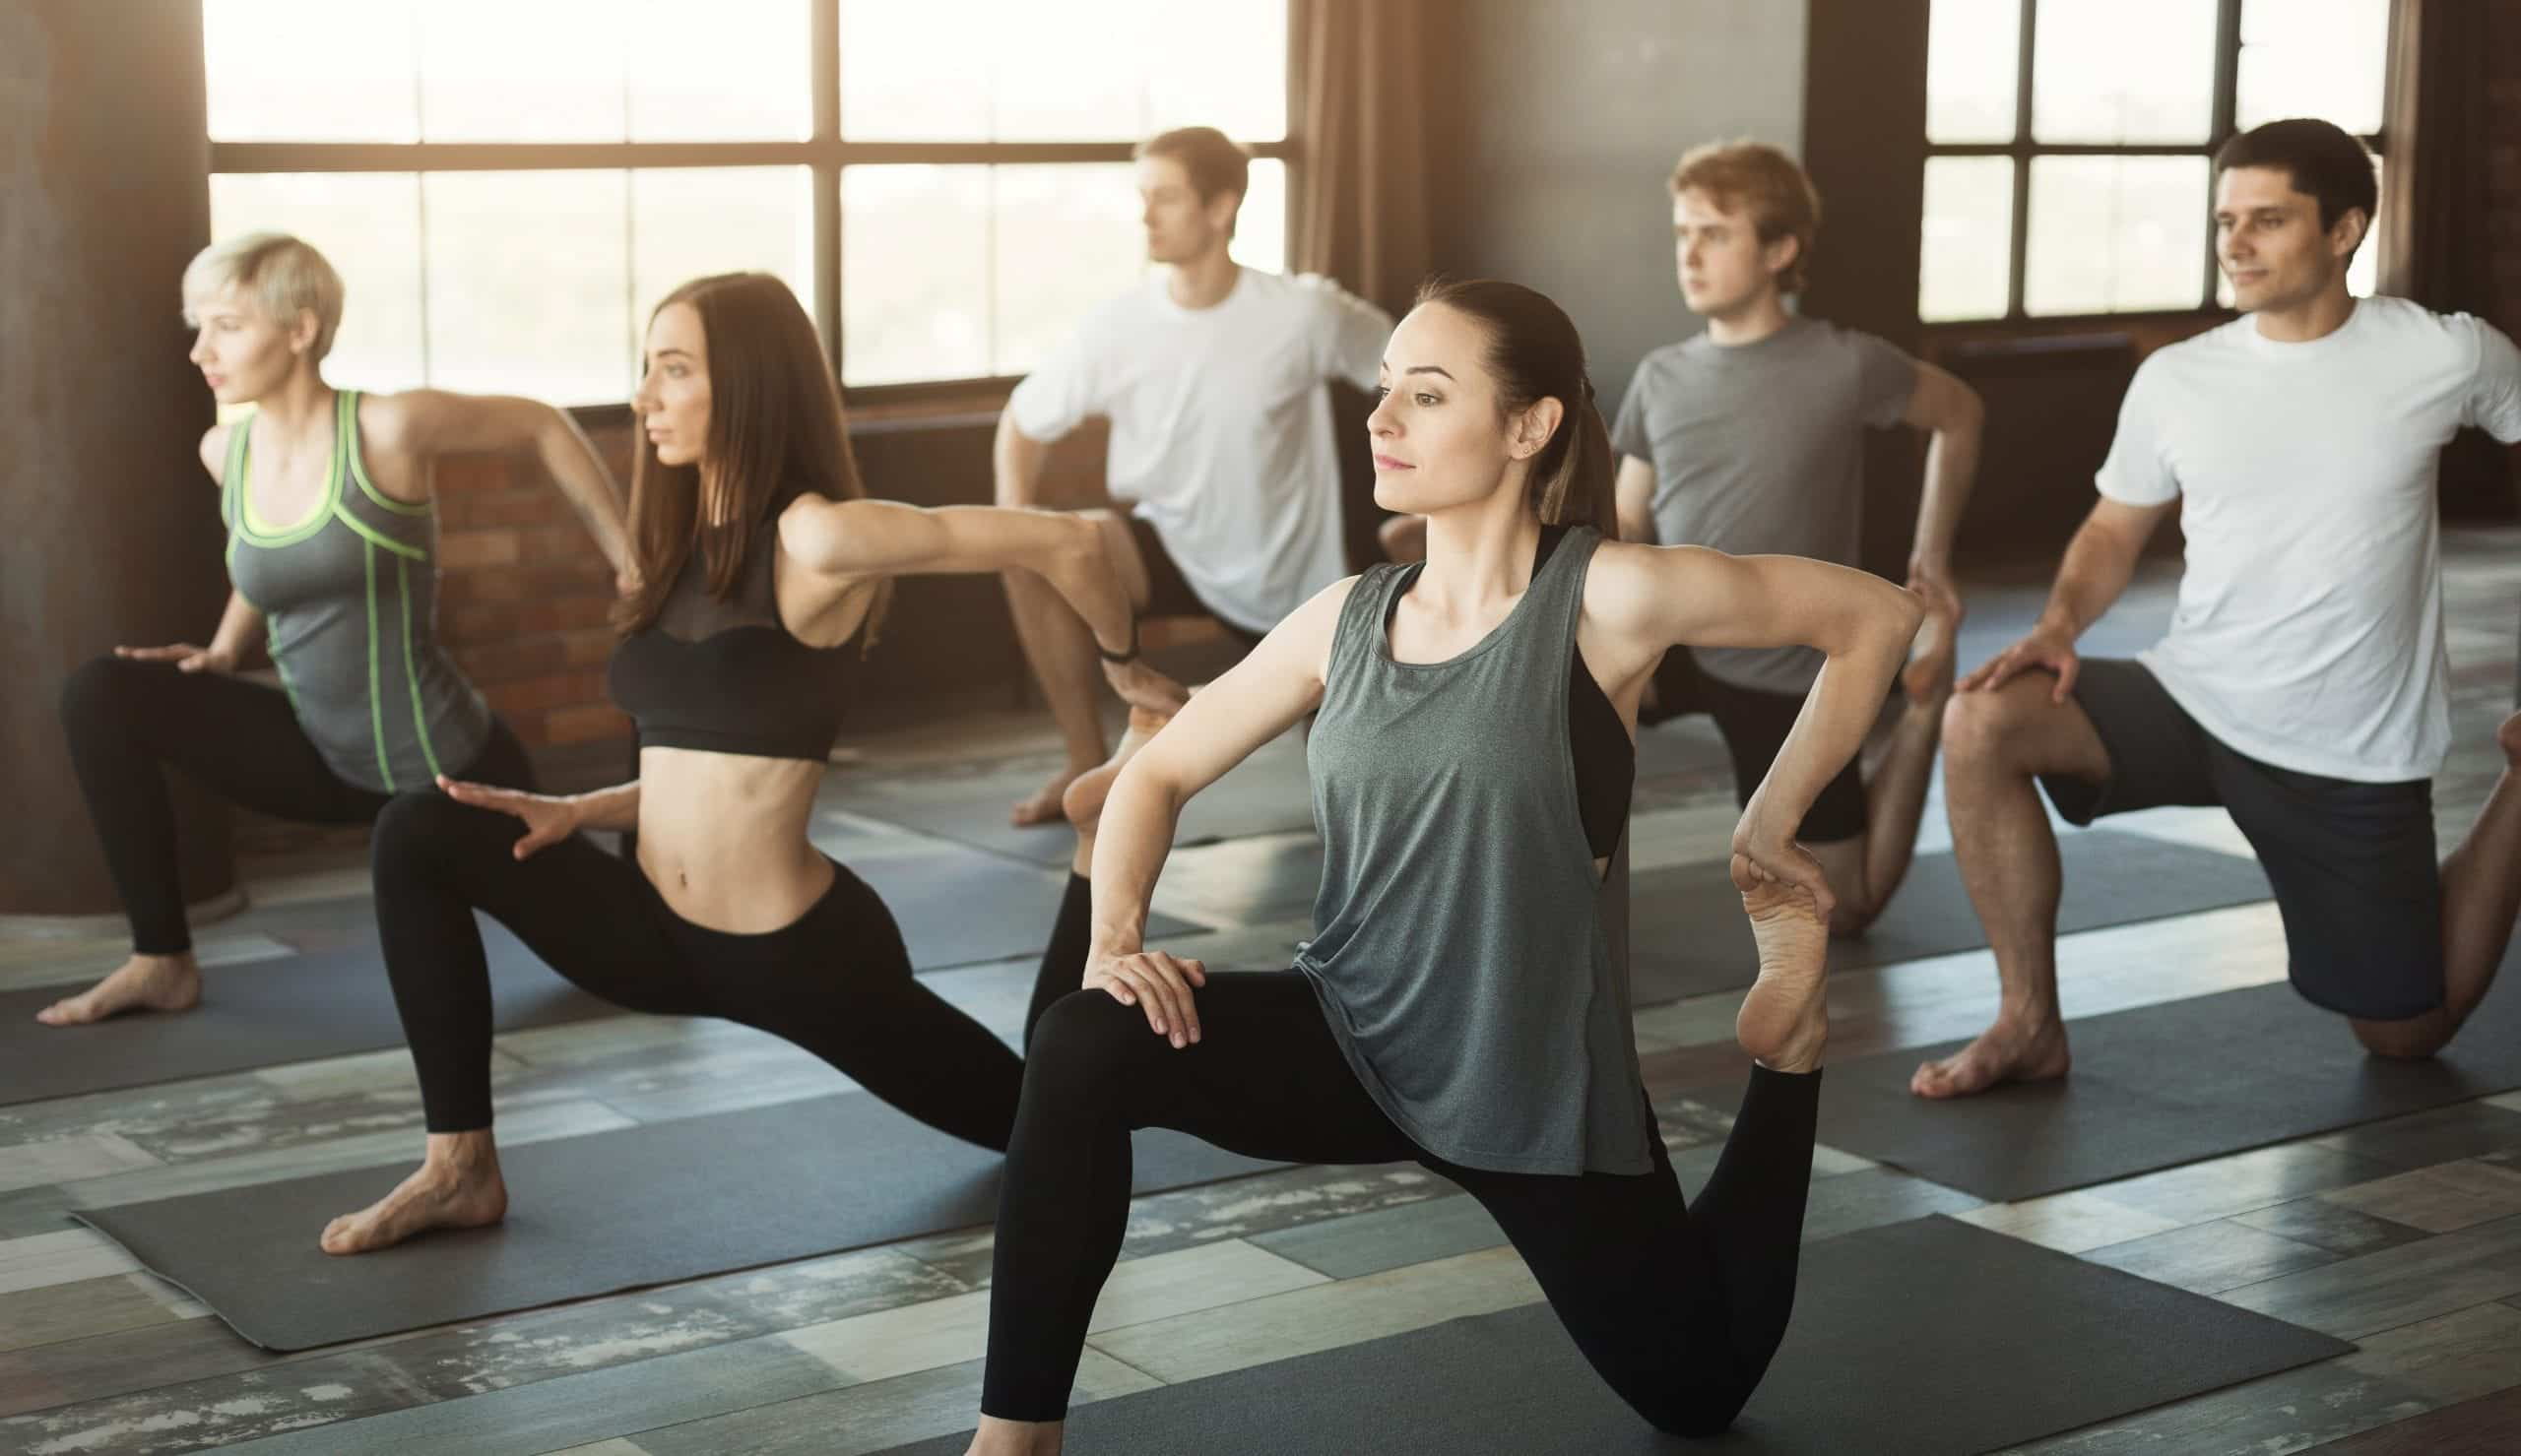 benefits of pilates Fitness or yoga practice. Group of fit people working out in sports club, doing warming up exercises, stretching feet, copy space